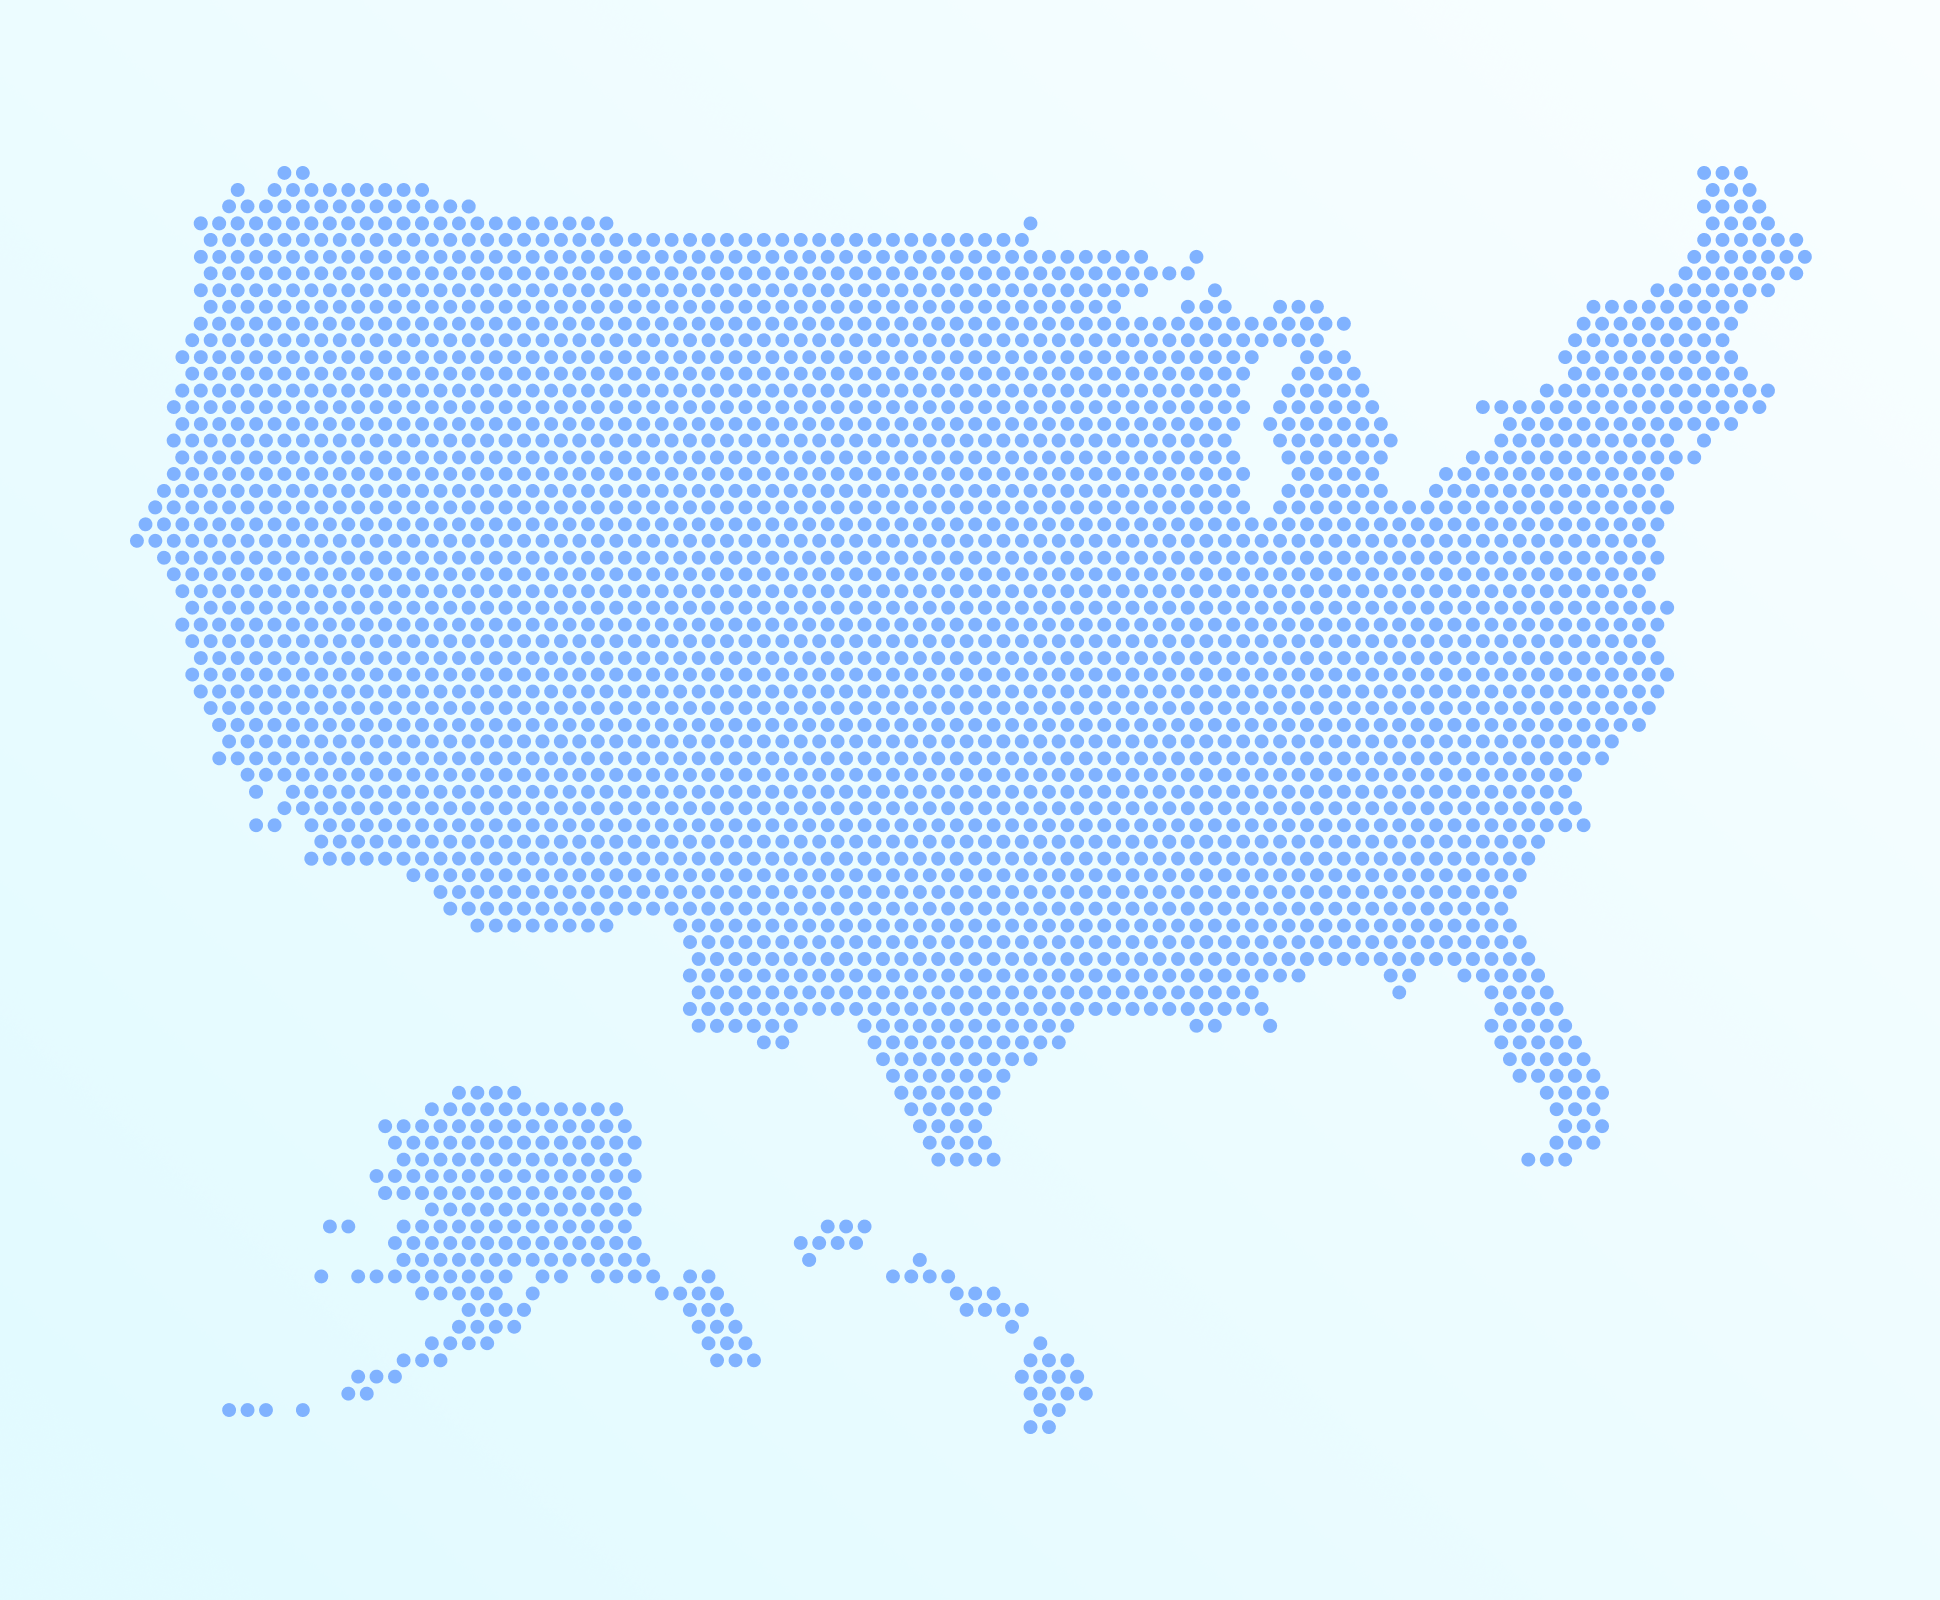 Payroll in the United States